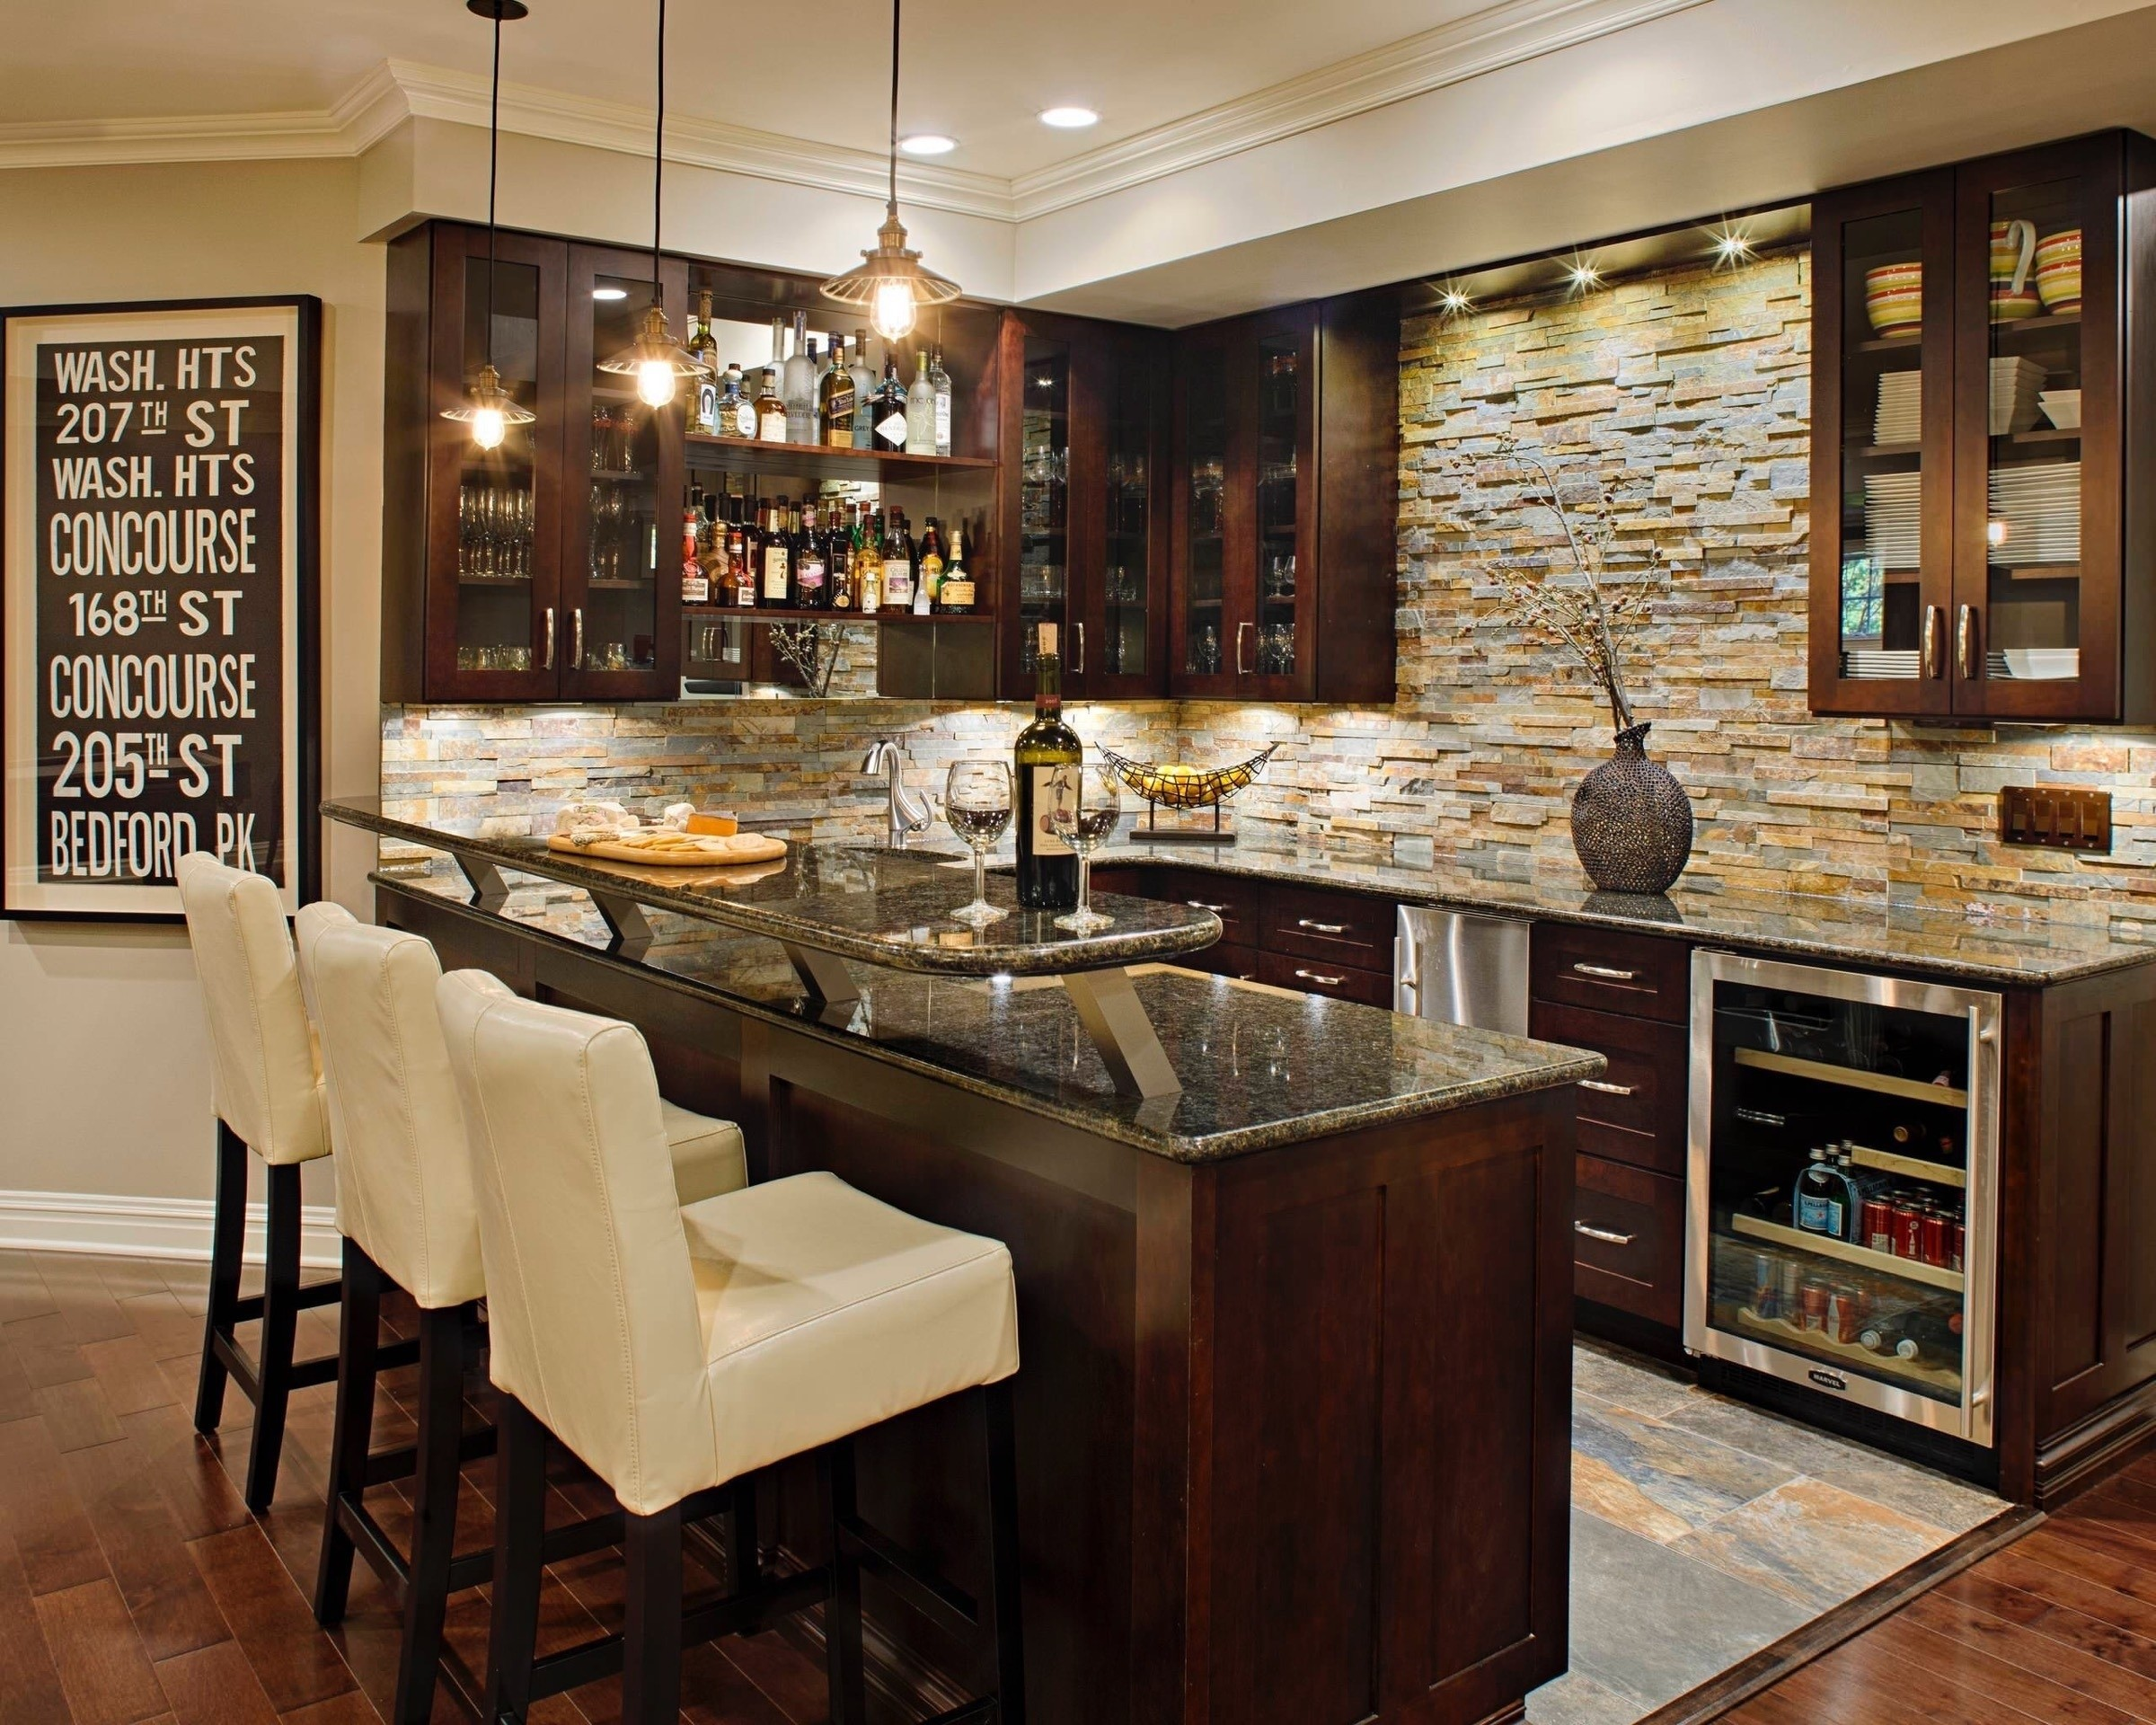 Amazing Wet Bar With Sink And Refrigerator